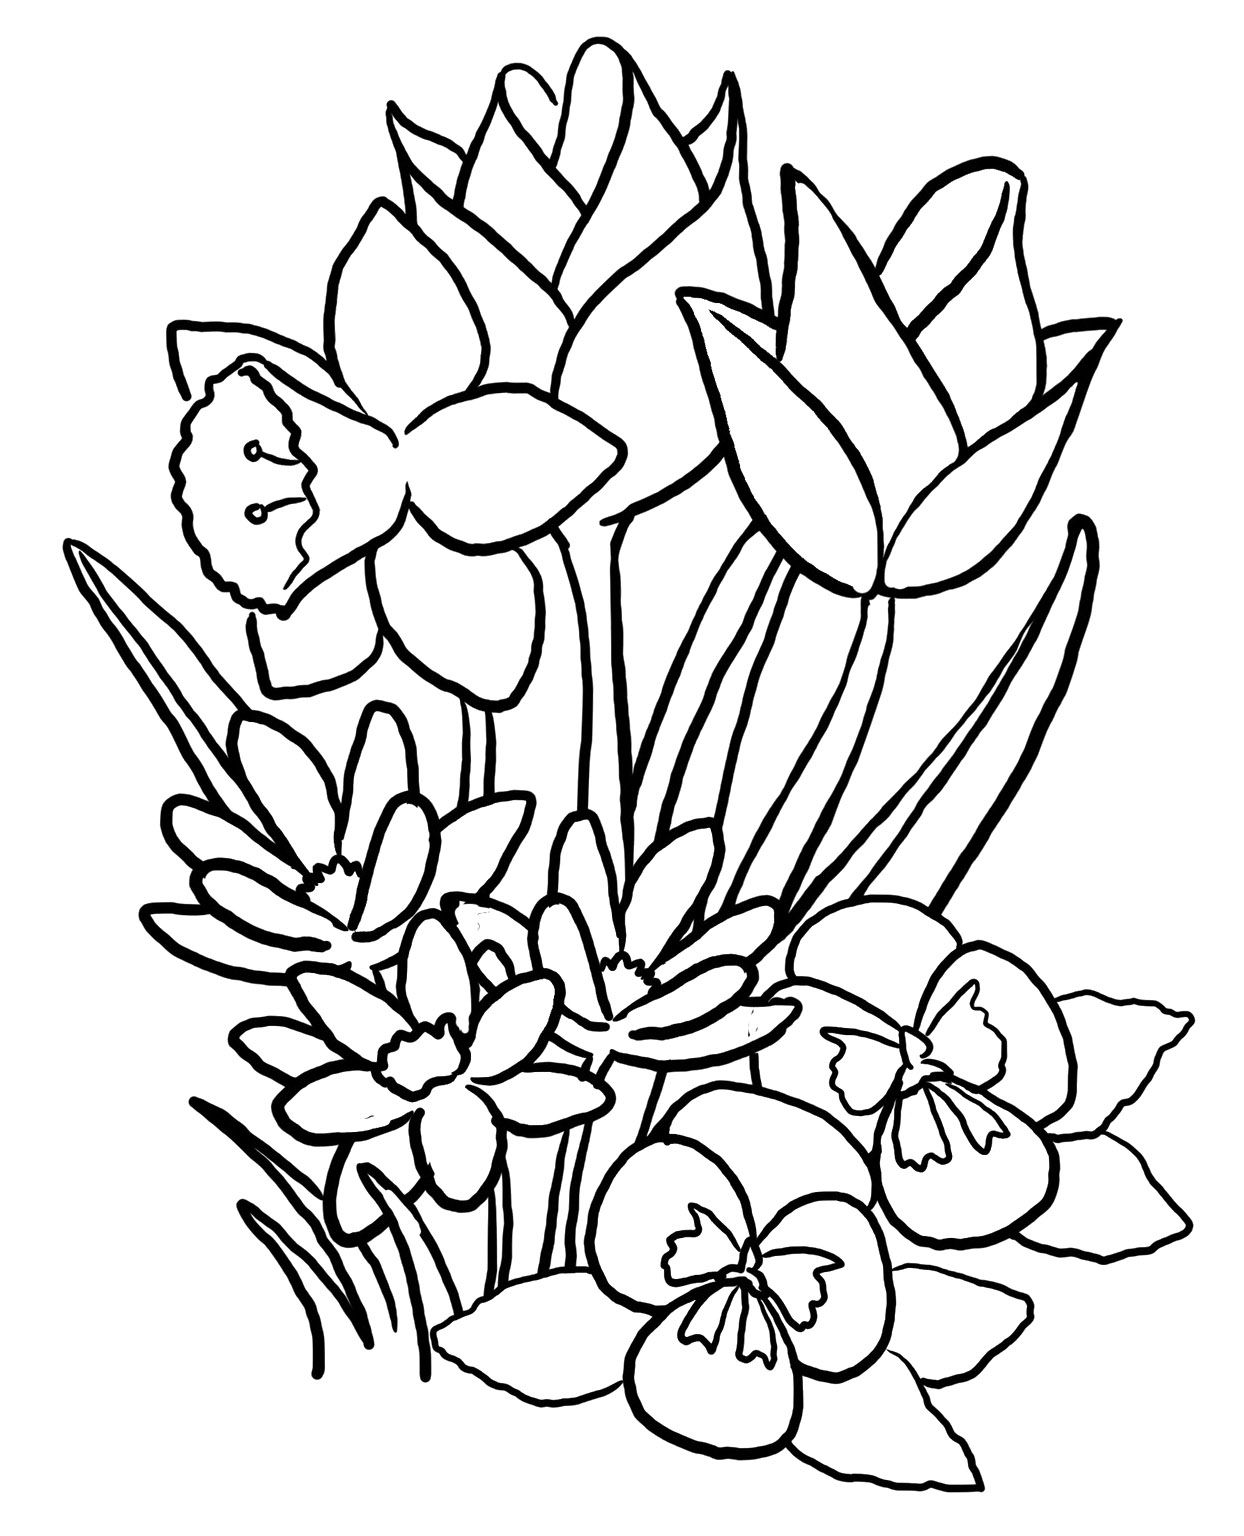 Spring coloring pages printable spring coloring pages free spring coloring pages online spring coloring pages for adults teenagers kids sheets flowers